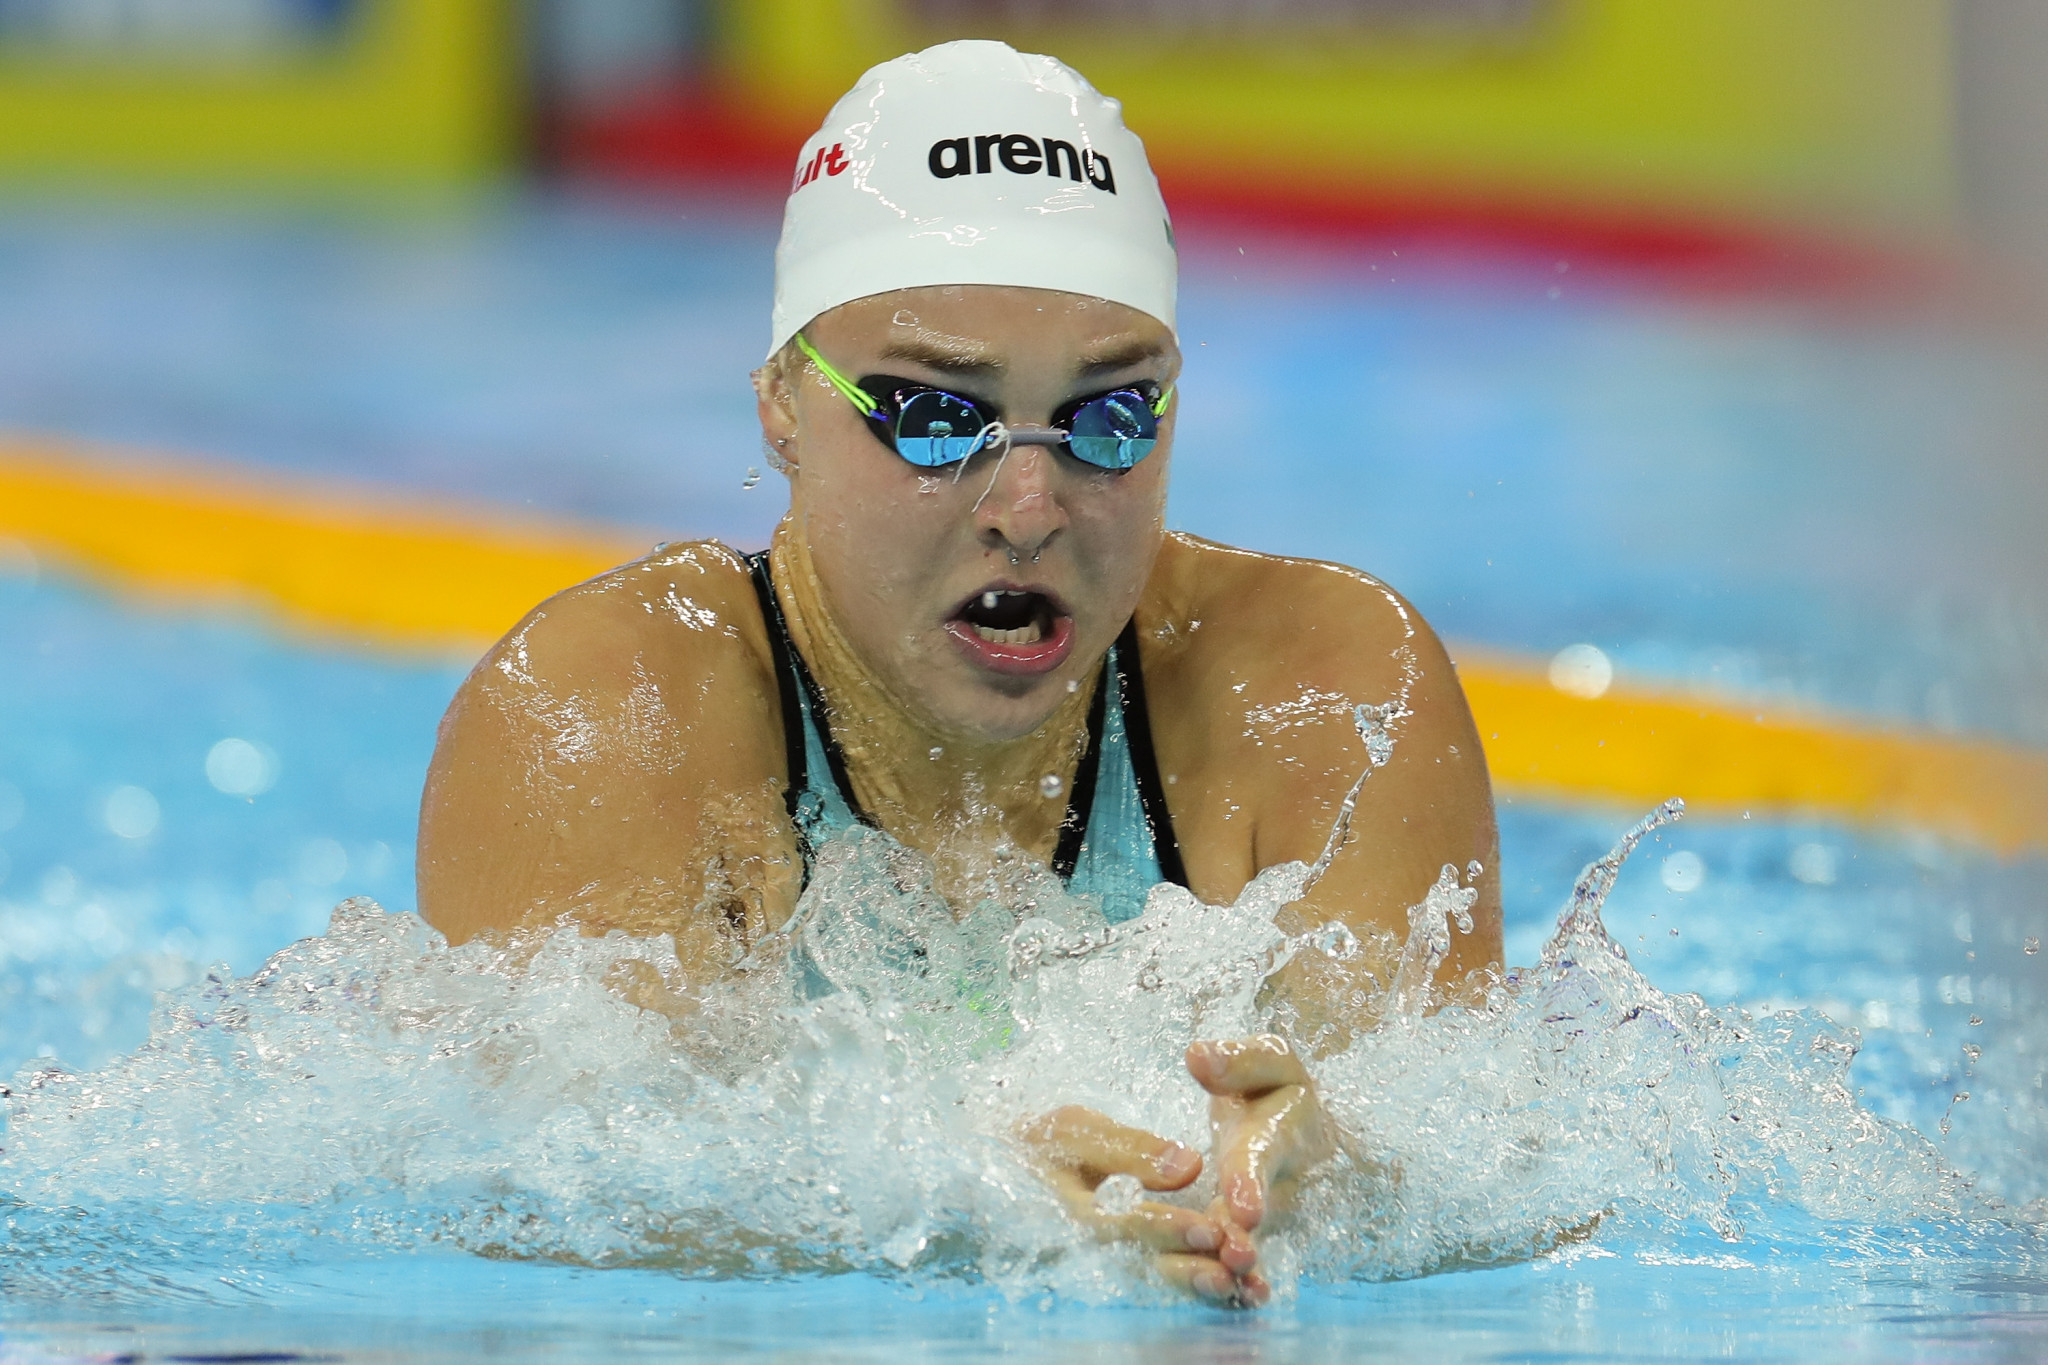 Lithuanian swimming star Rūta Meilutytė is facing a suspension after she missed three drugs tests in 12 months ©Getty Images